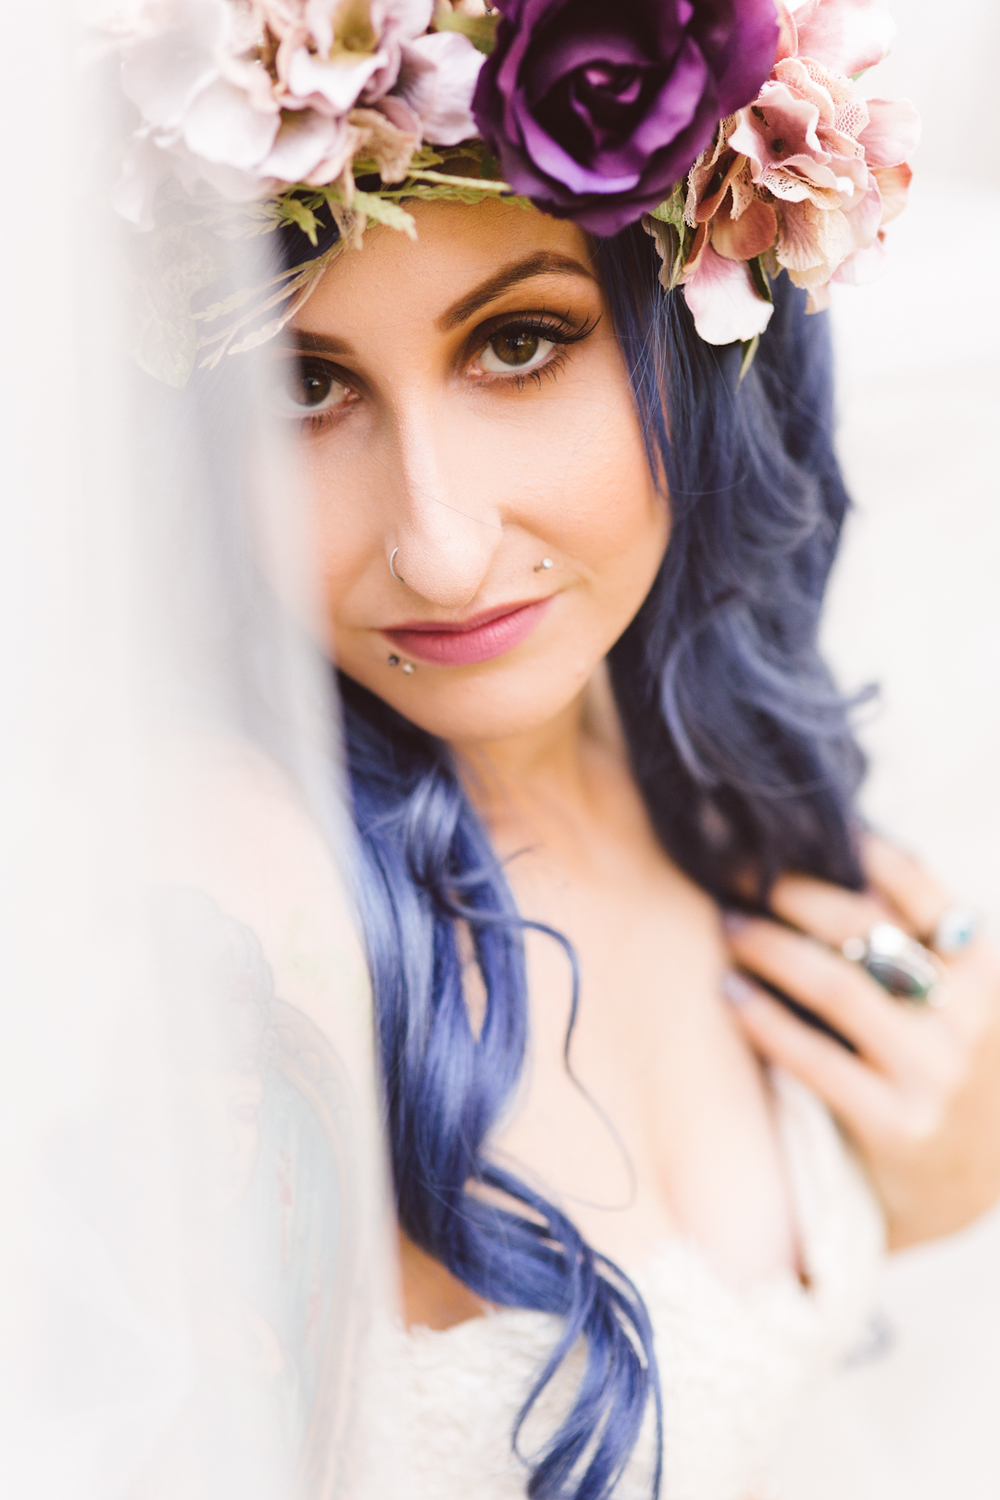 blue-hair-bride-secret-garden-themed-sareh nouri-gown-bridal-session-maryland-brooke-michelle-photography-100.jpg